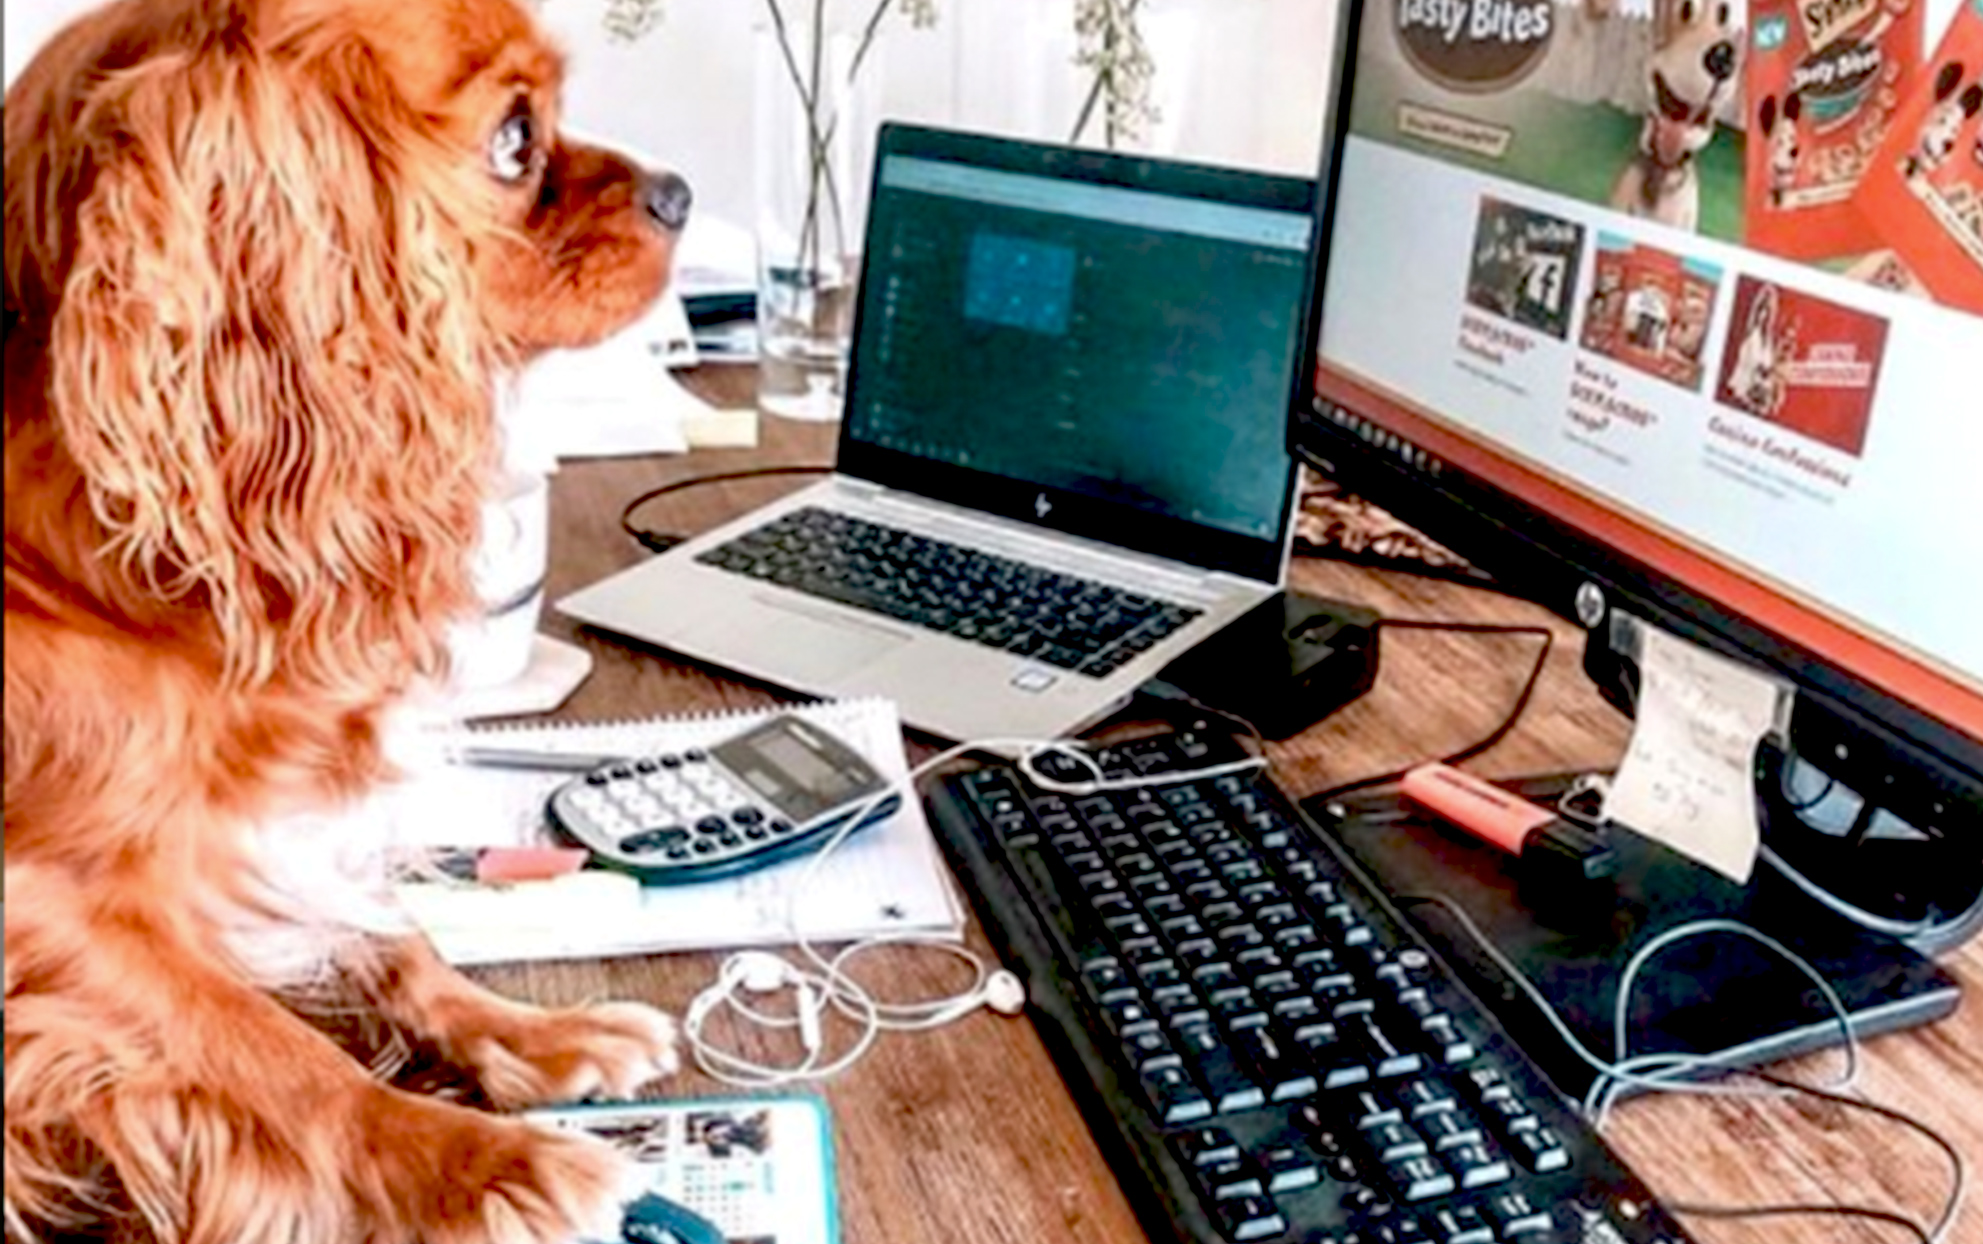 Dog at a desk pretending to be working on a computer